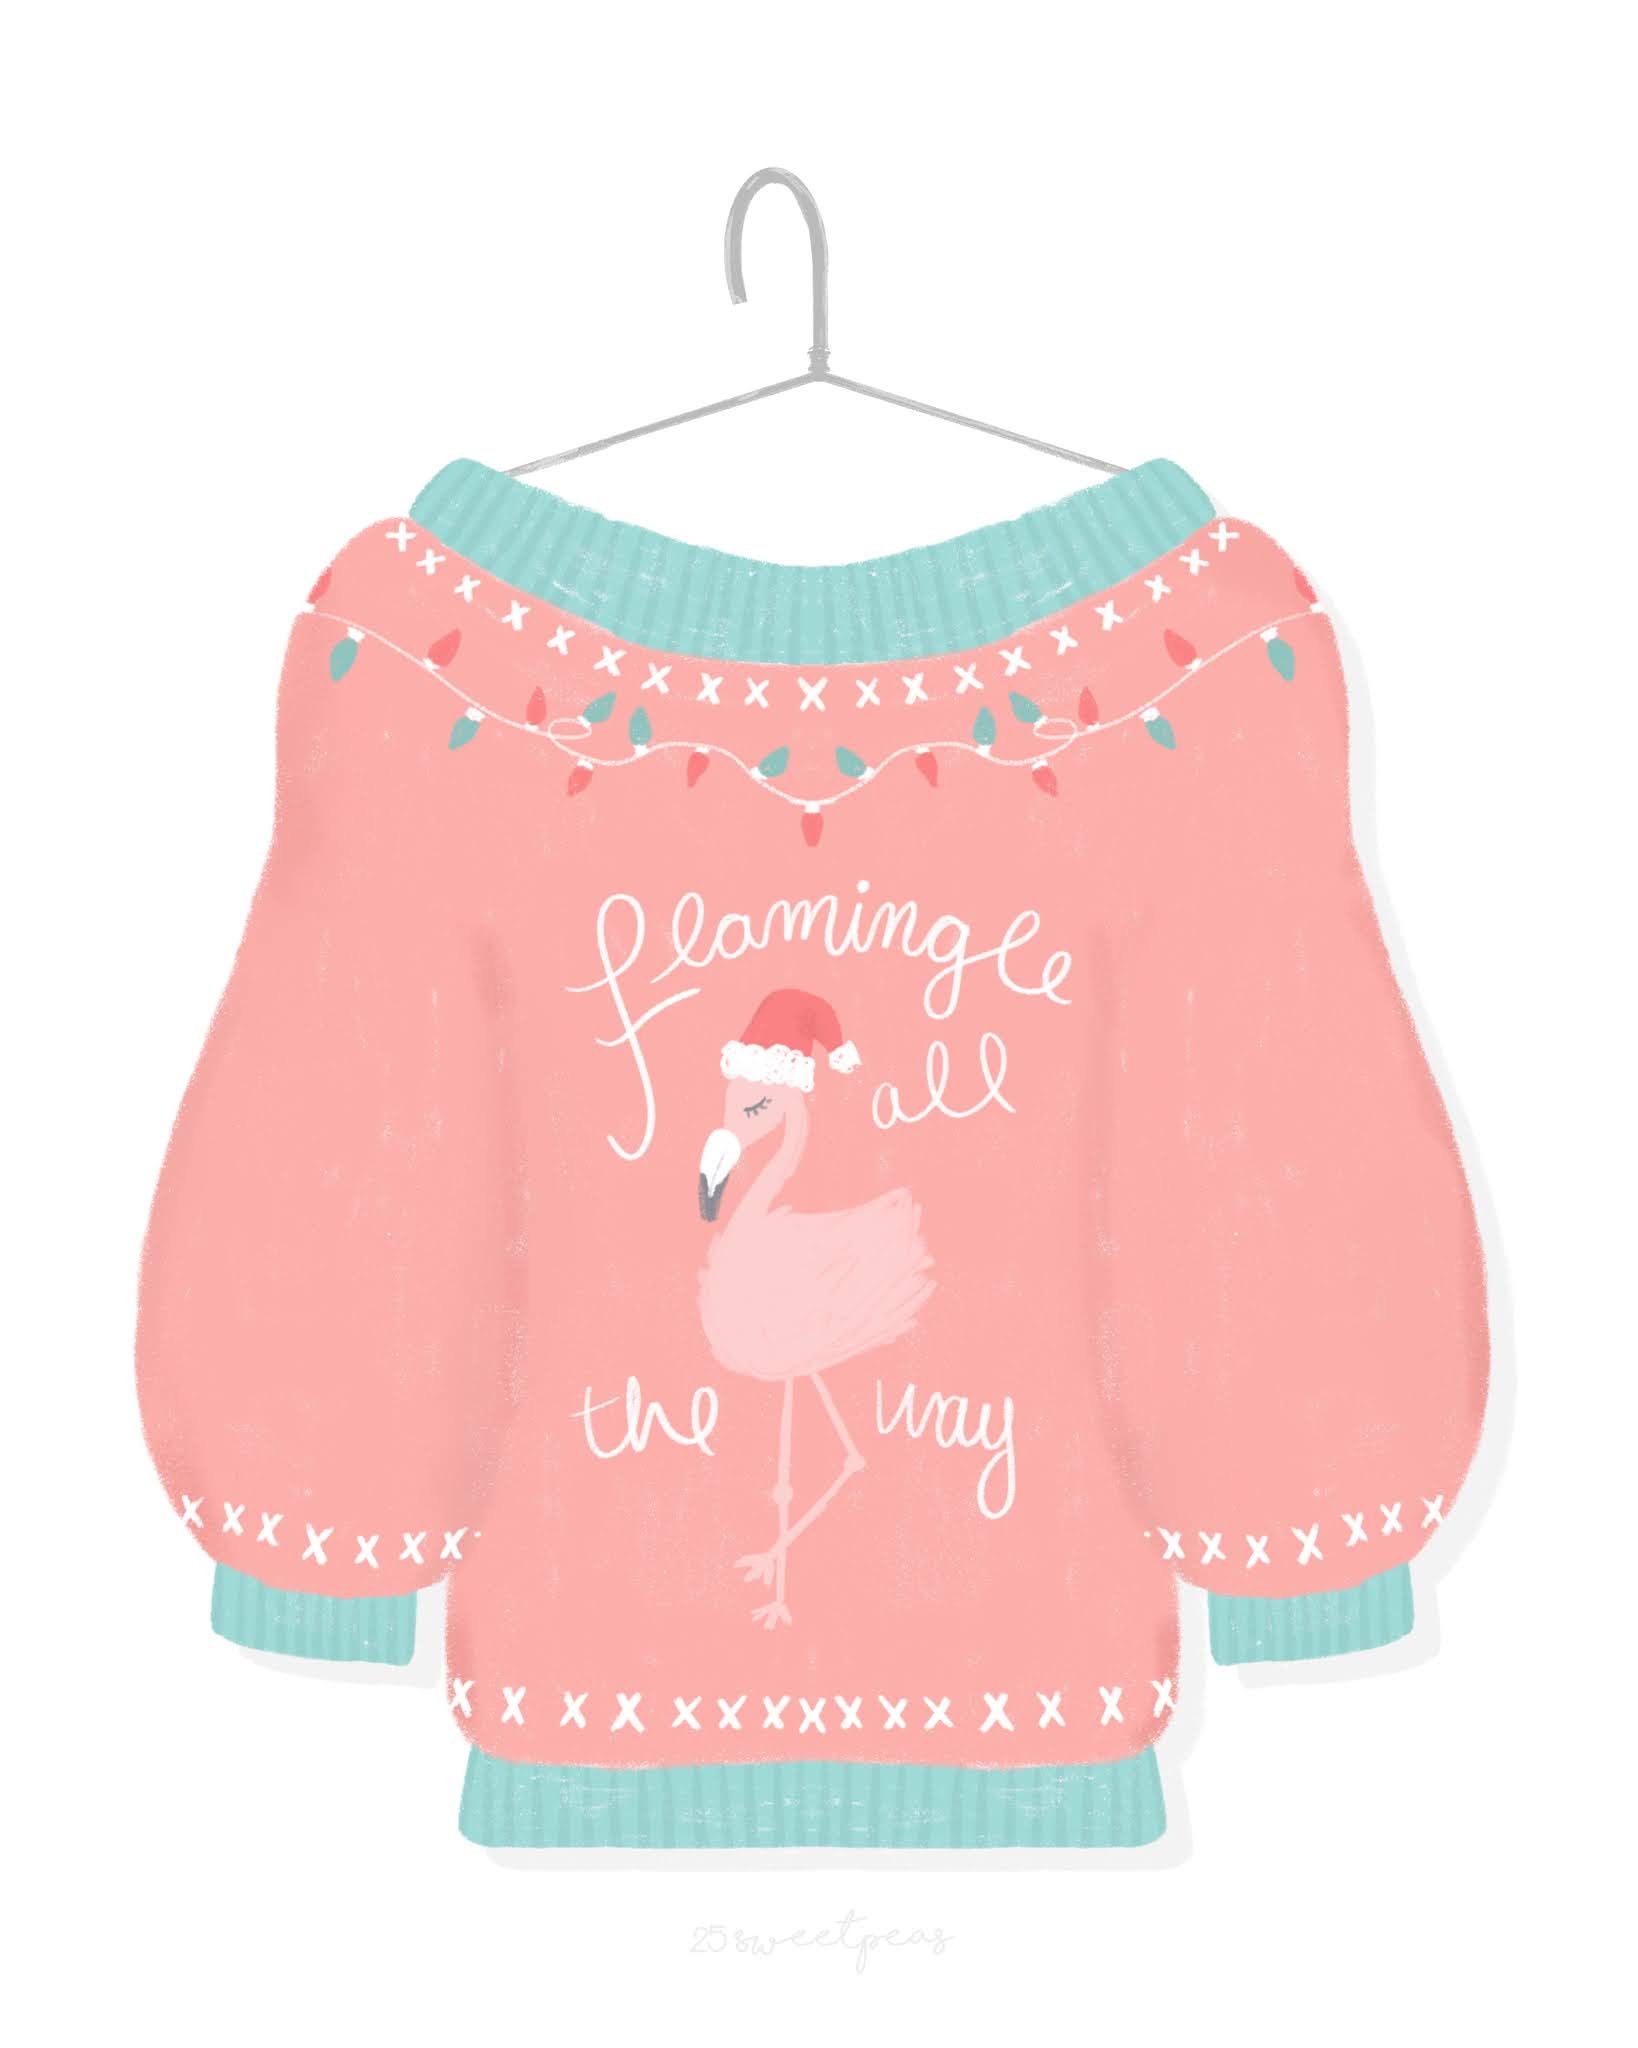 25 Sweetpeas Sweater Weather Illustration